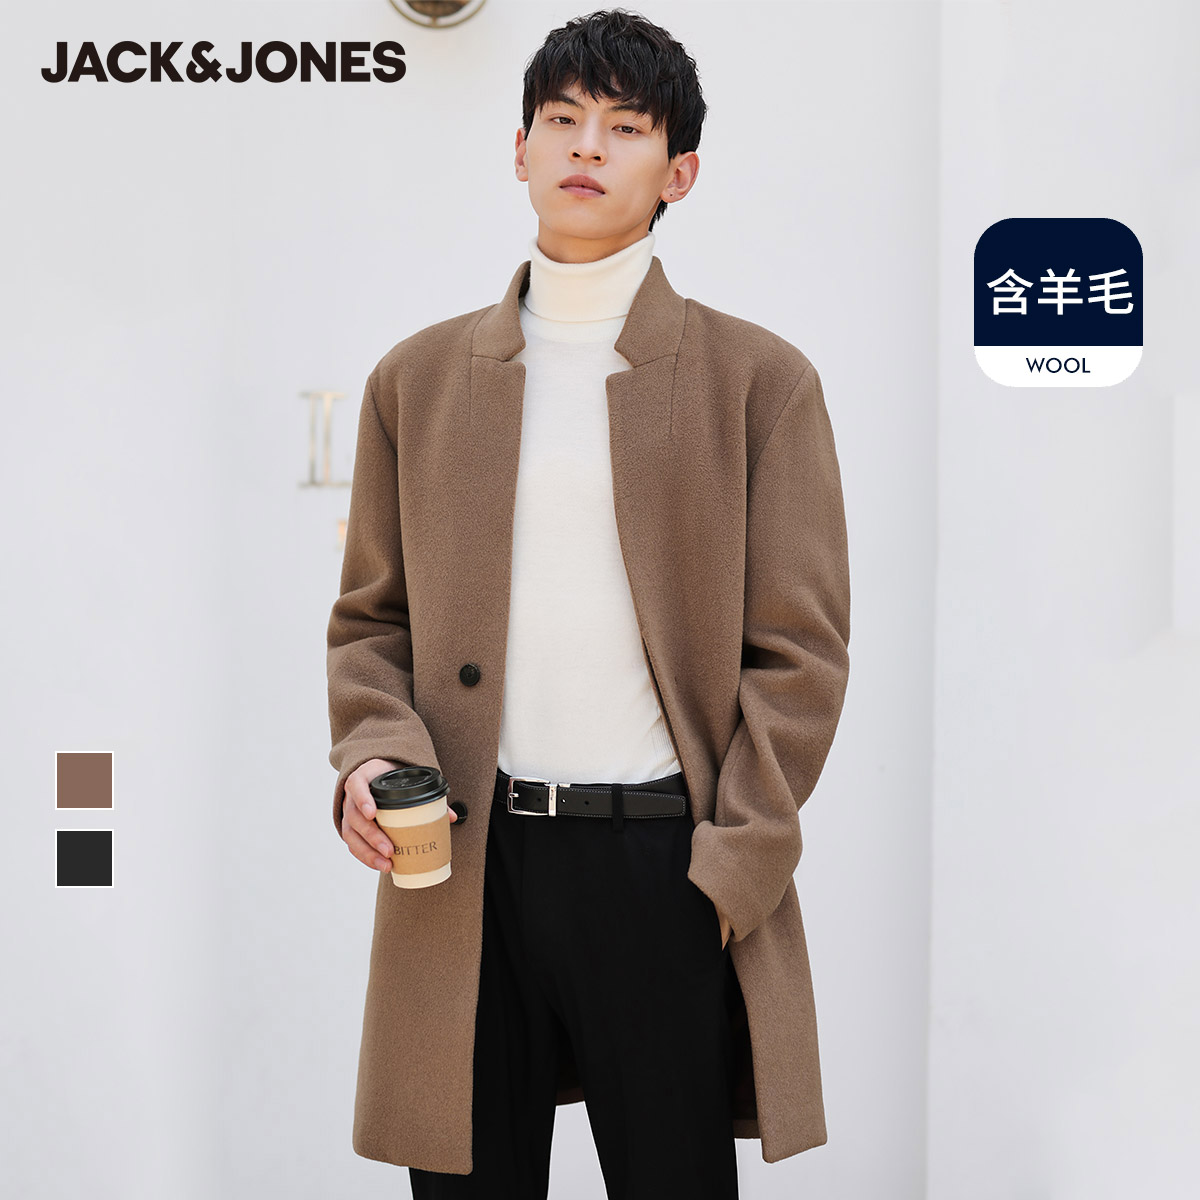 JackJones Jack Jones autumn and winter warmth with sheep wool casual woolen coat men's mid-length coat